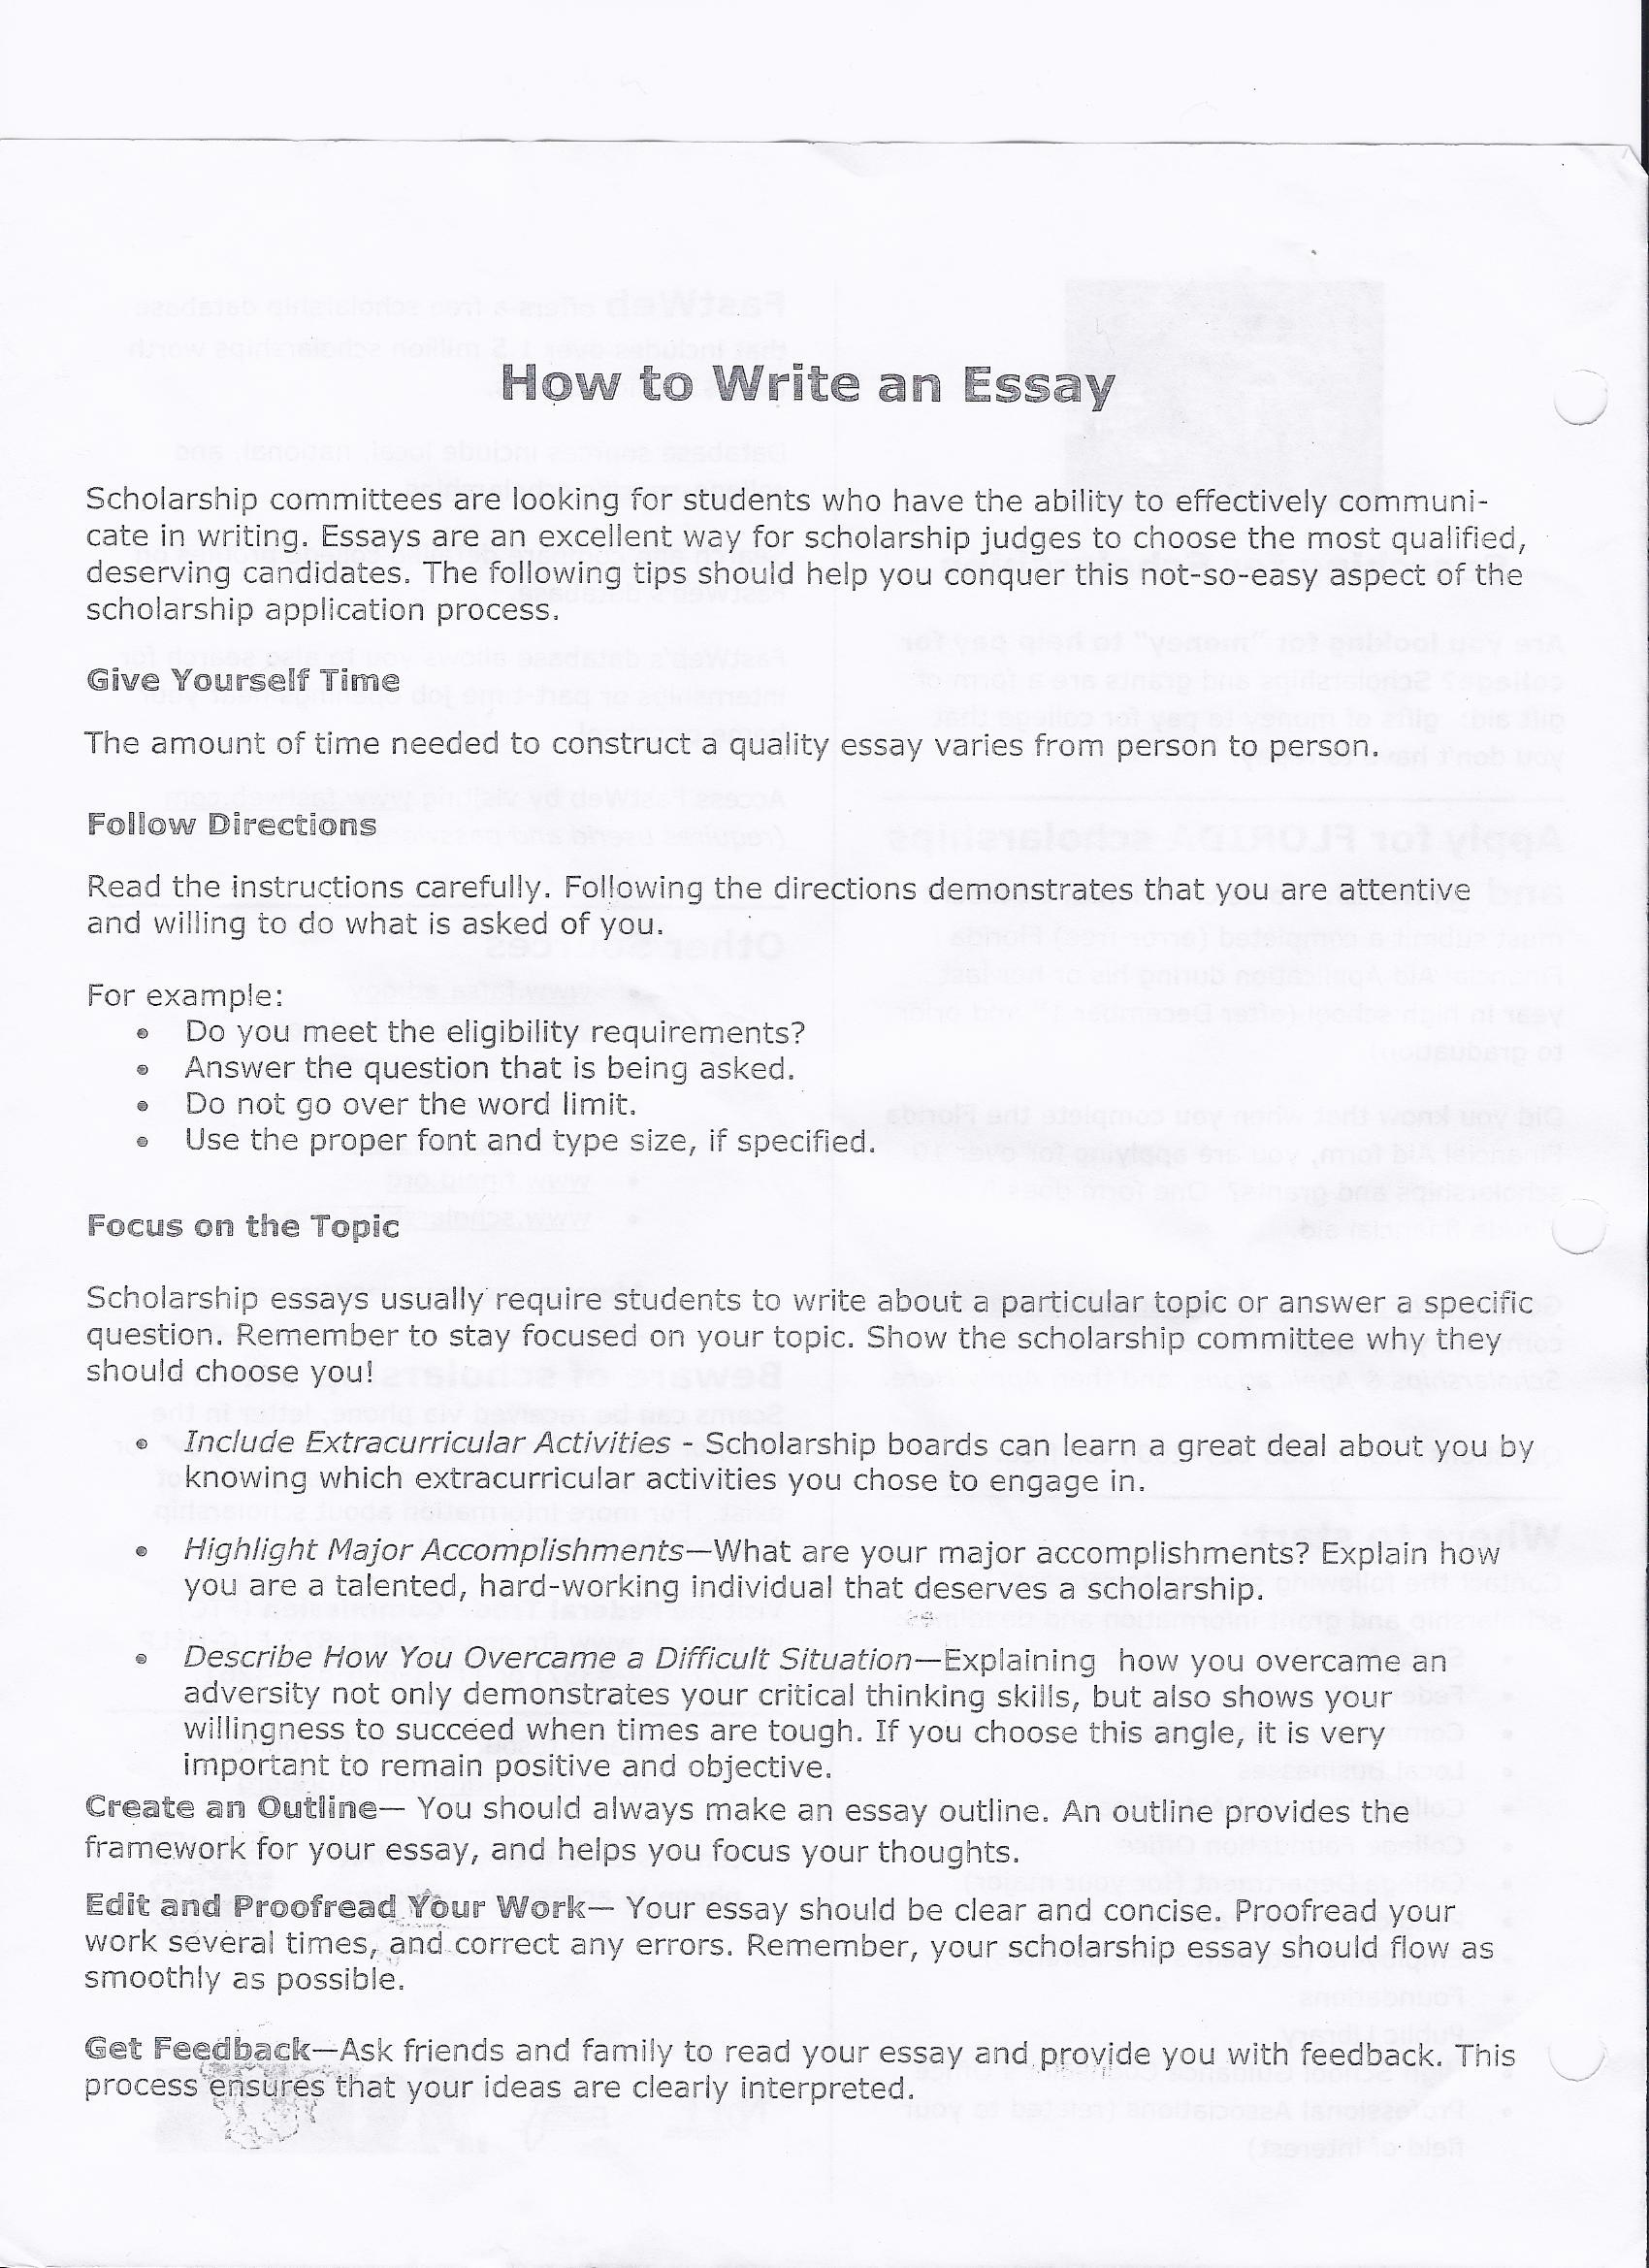 5 Tricks for Choosing Your College Essay Topic